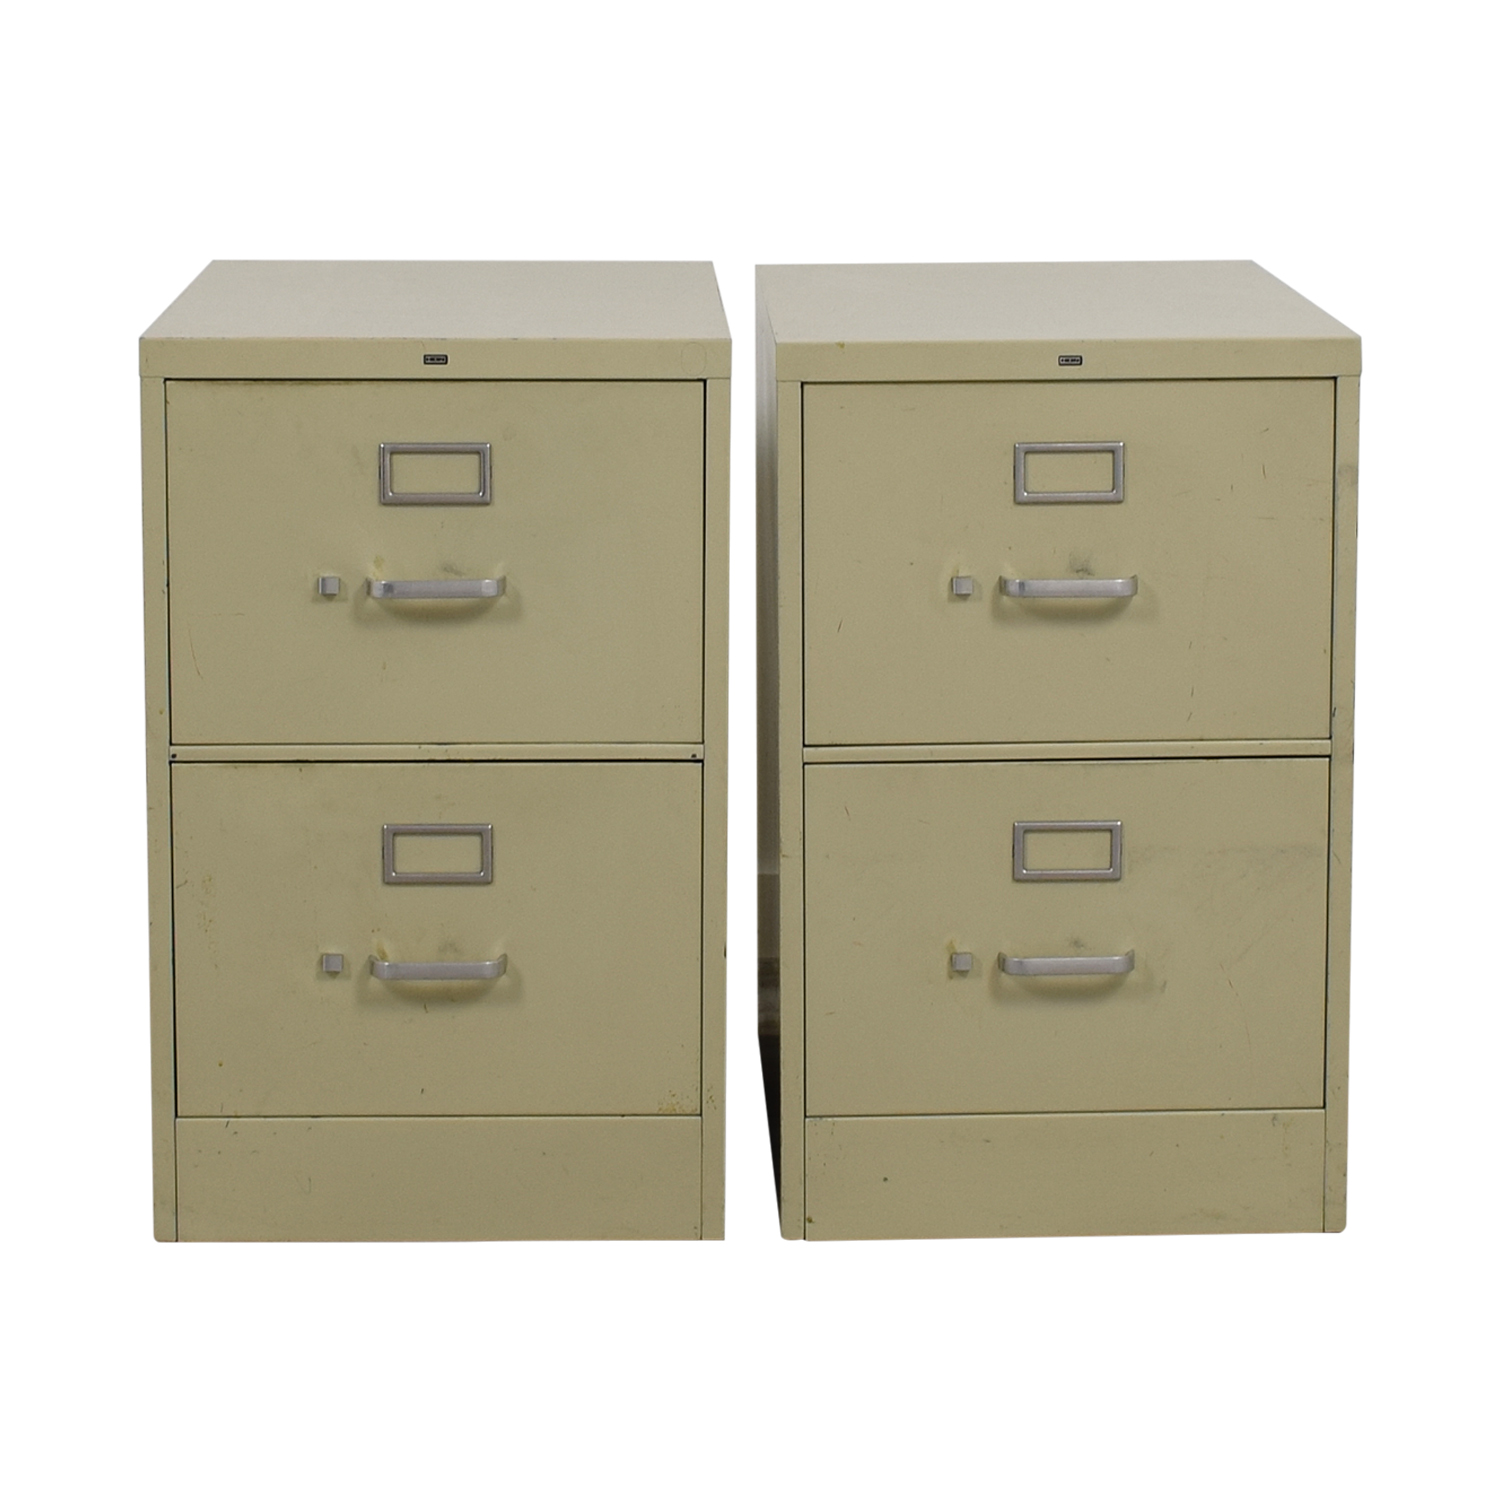 green cabinets metal file decor furniture p categories office depot home en inch the canada cabinet storage filing